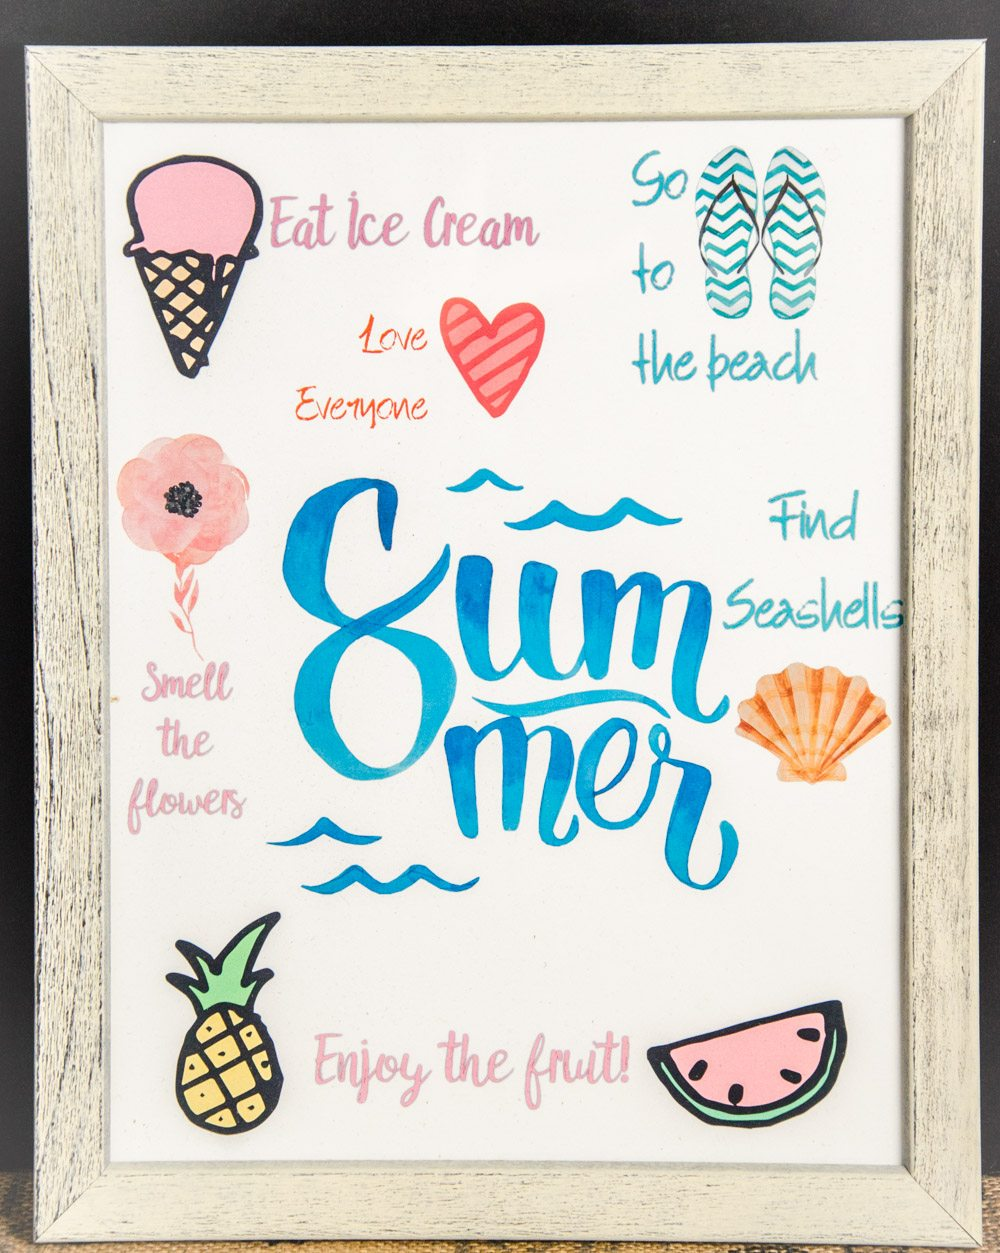 FREE Cheerful Summer Printables: 6 Designs to Brighten Your Day! Use for wall decor, putting in organizer, or just brightening your surroundings.